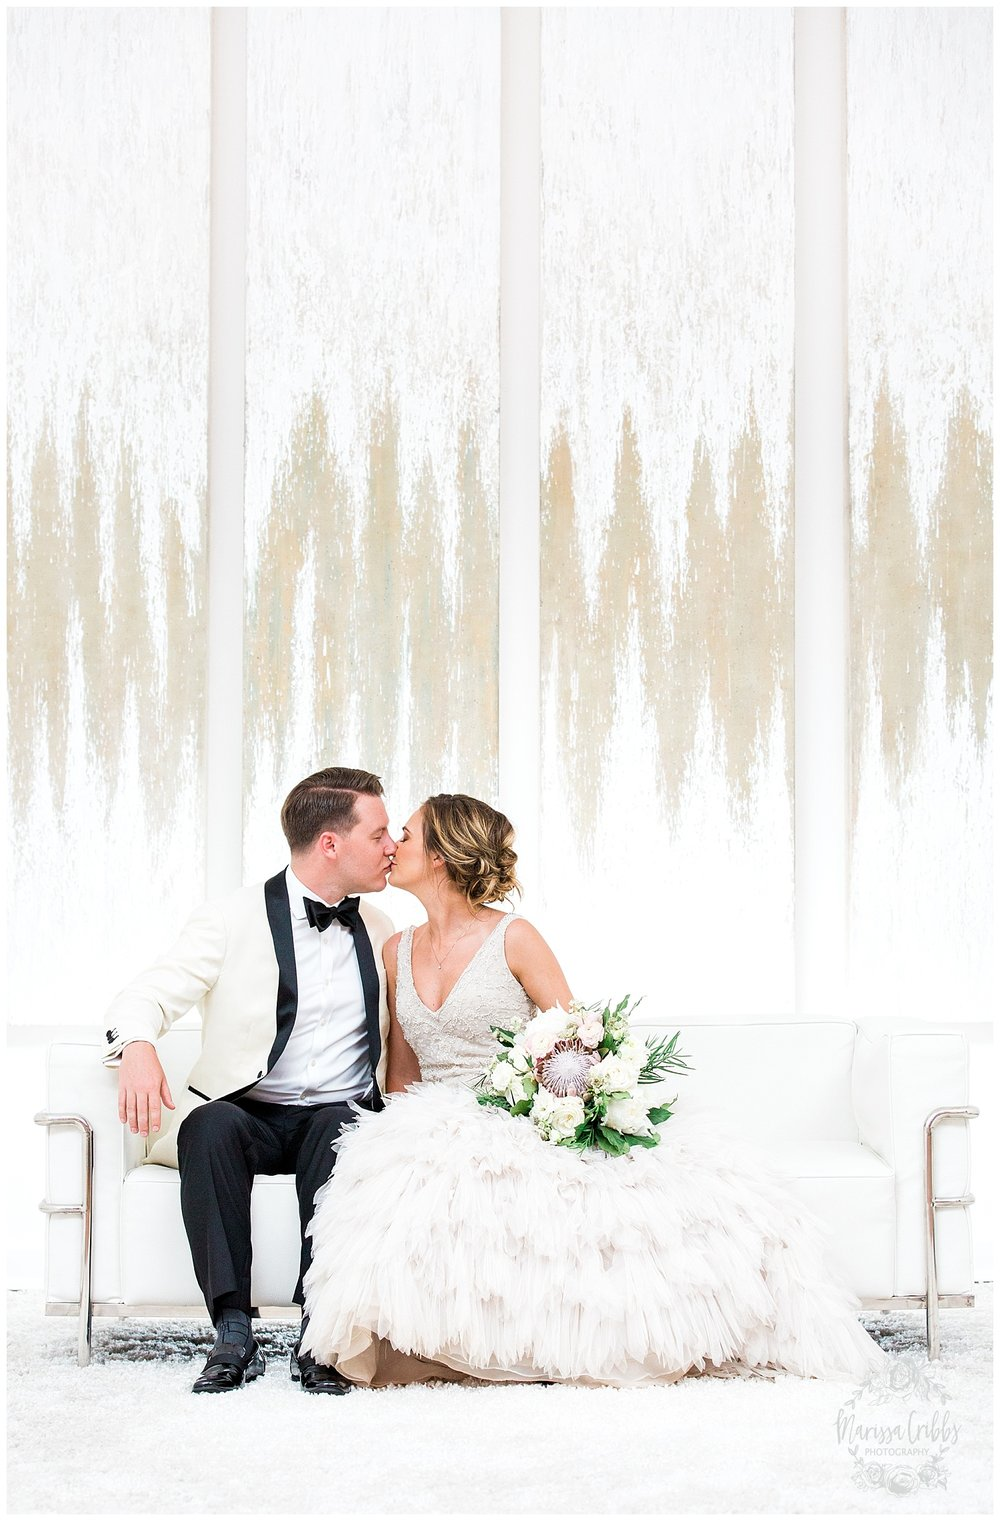 Haley & Steven Reception | The Gallery Event Space | Marissa Cribbs Photography | KC Wedding Photographers_1575.jpg